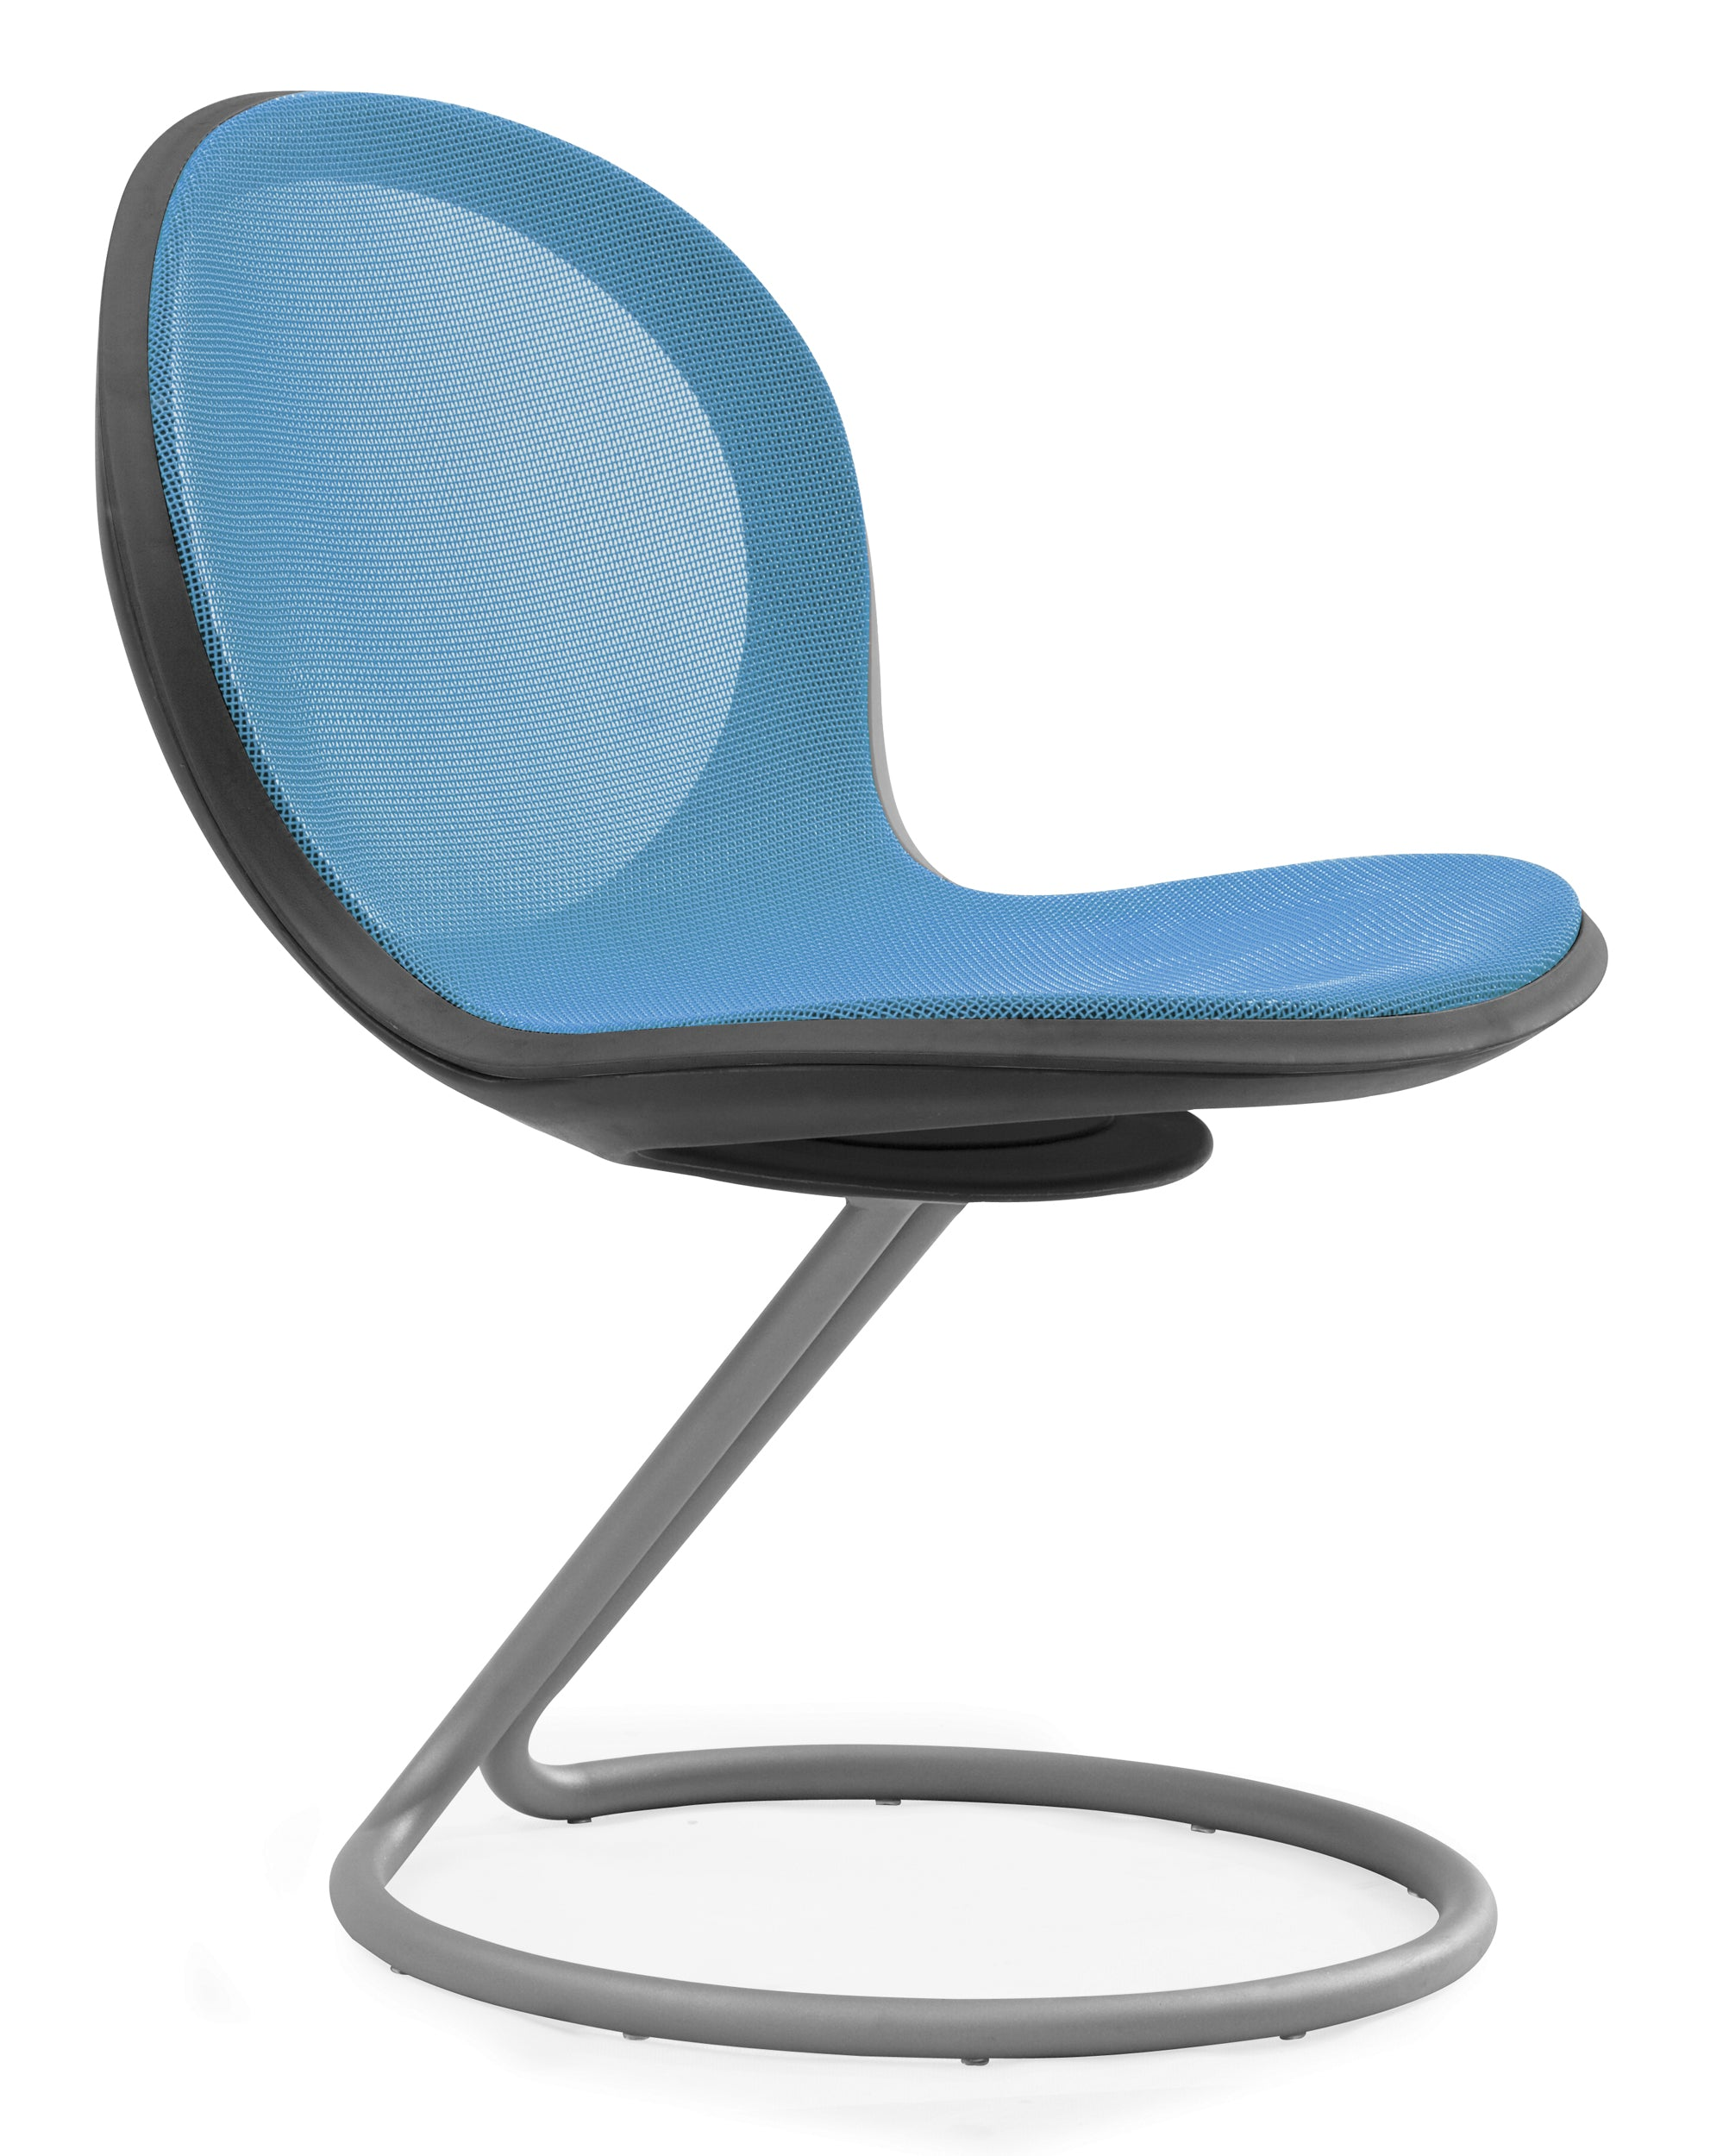 Ofminc Model N201-NET Series Curcular Base Chair